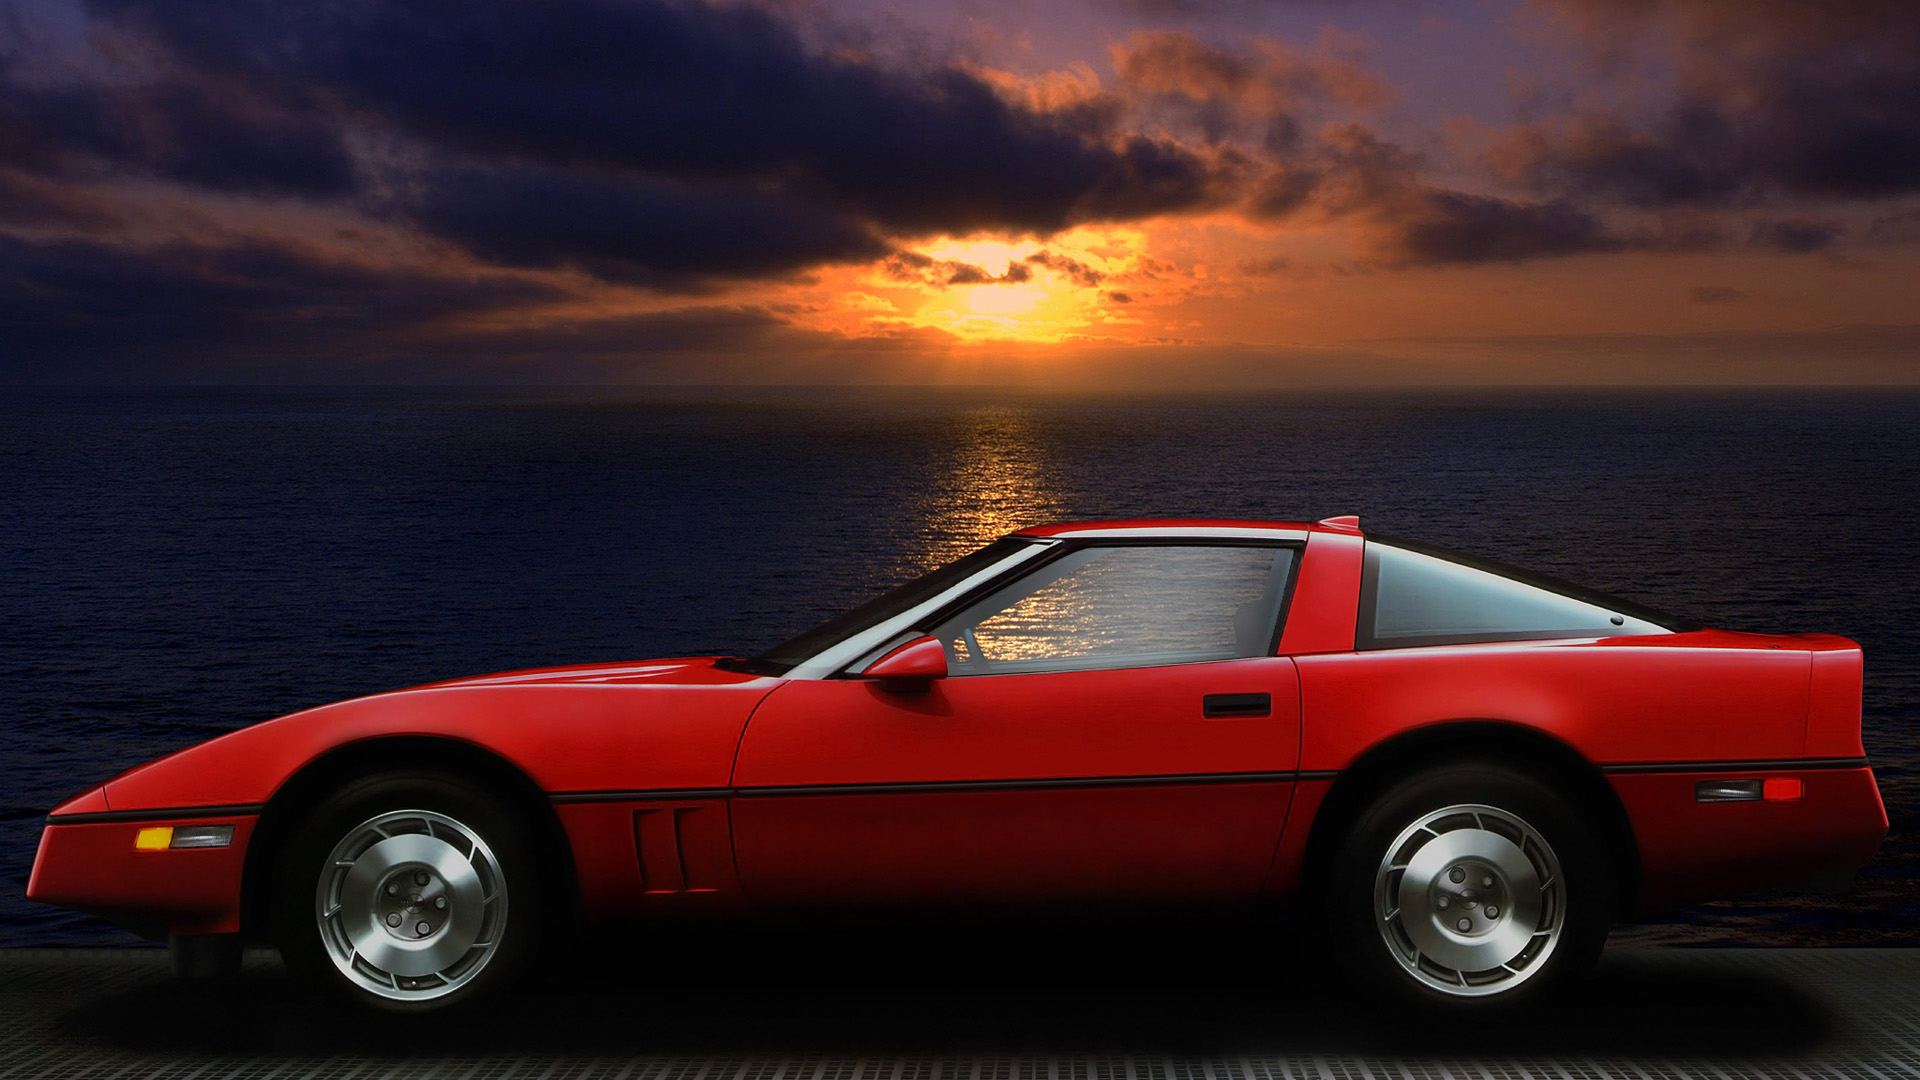 1984 Corvette Wallpapers